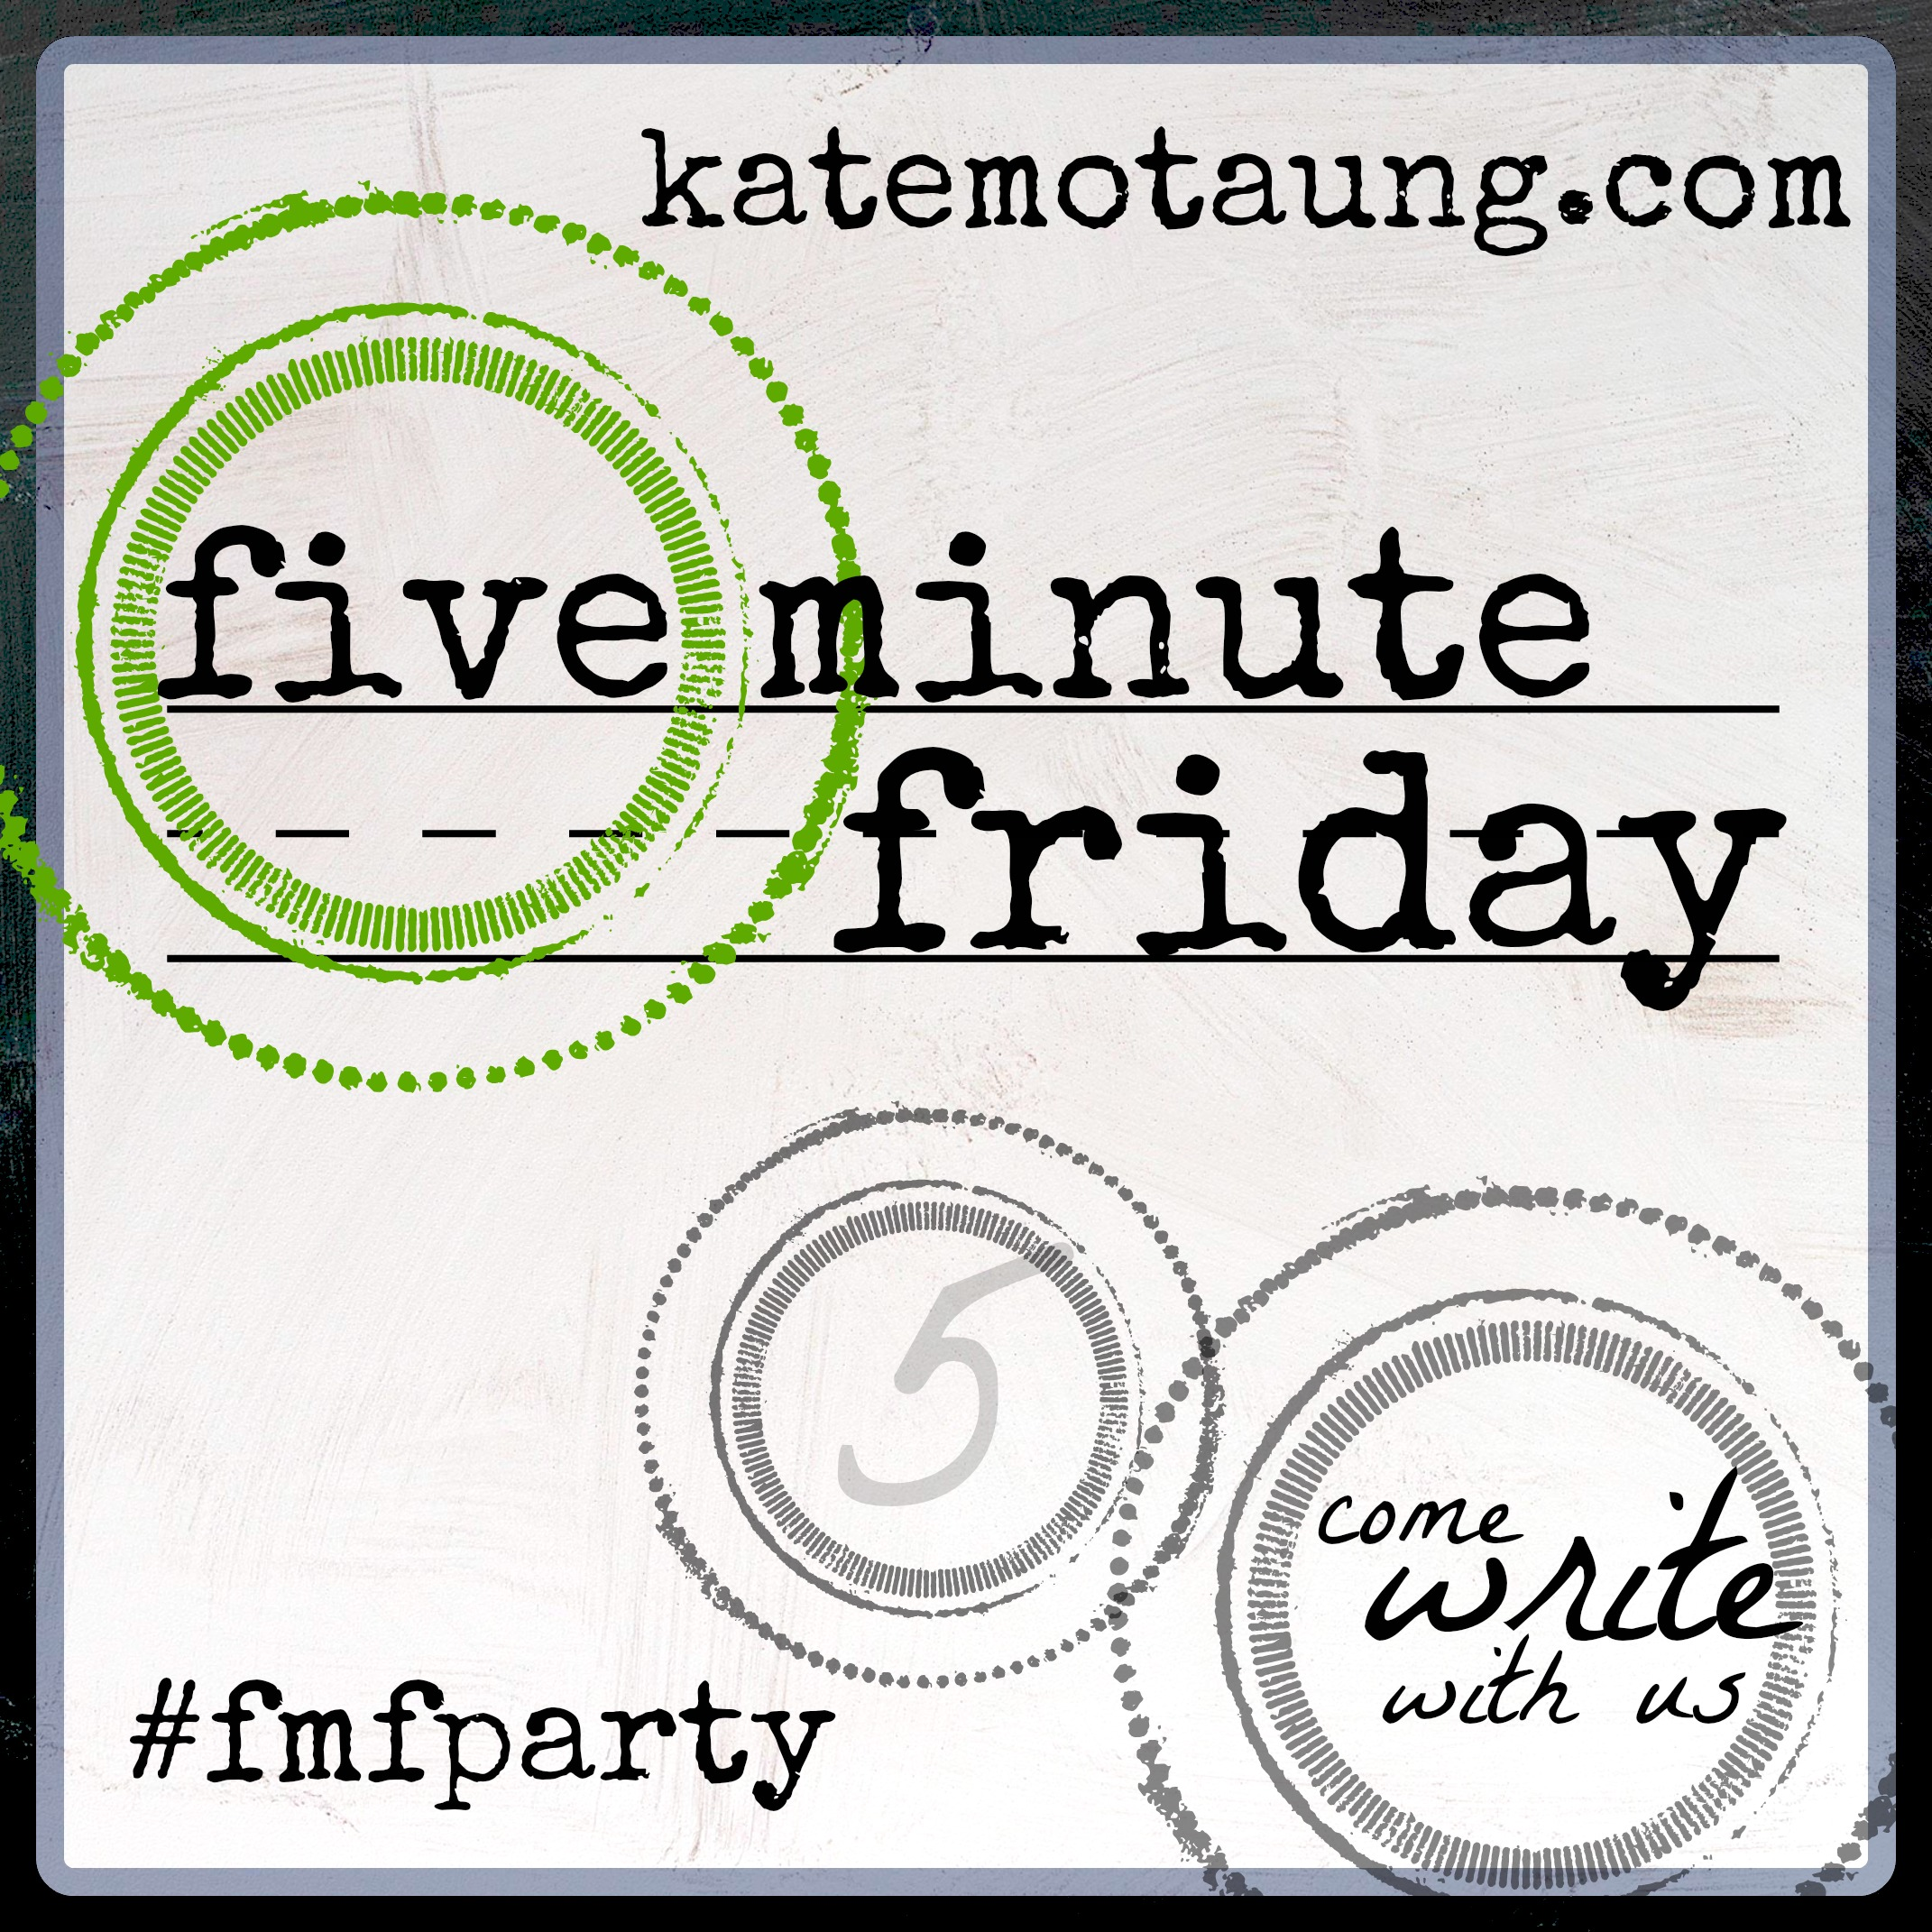 #fiveminutefriday